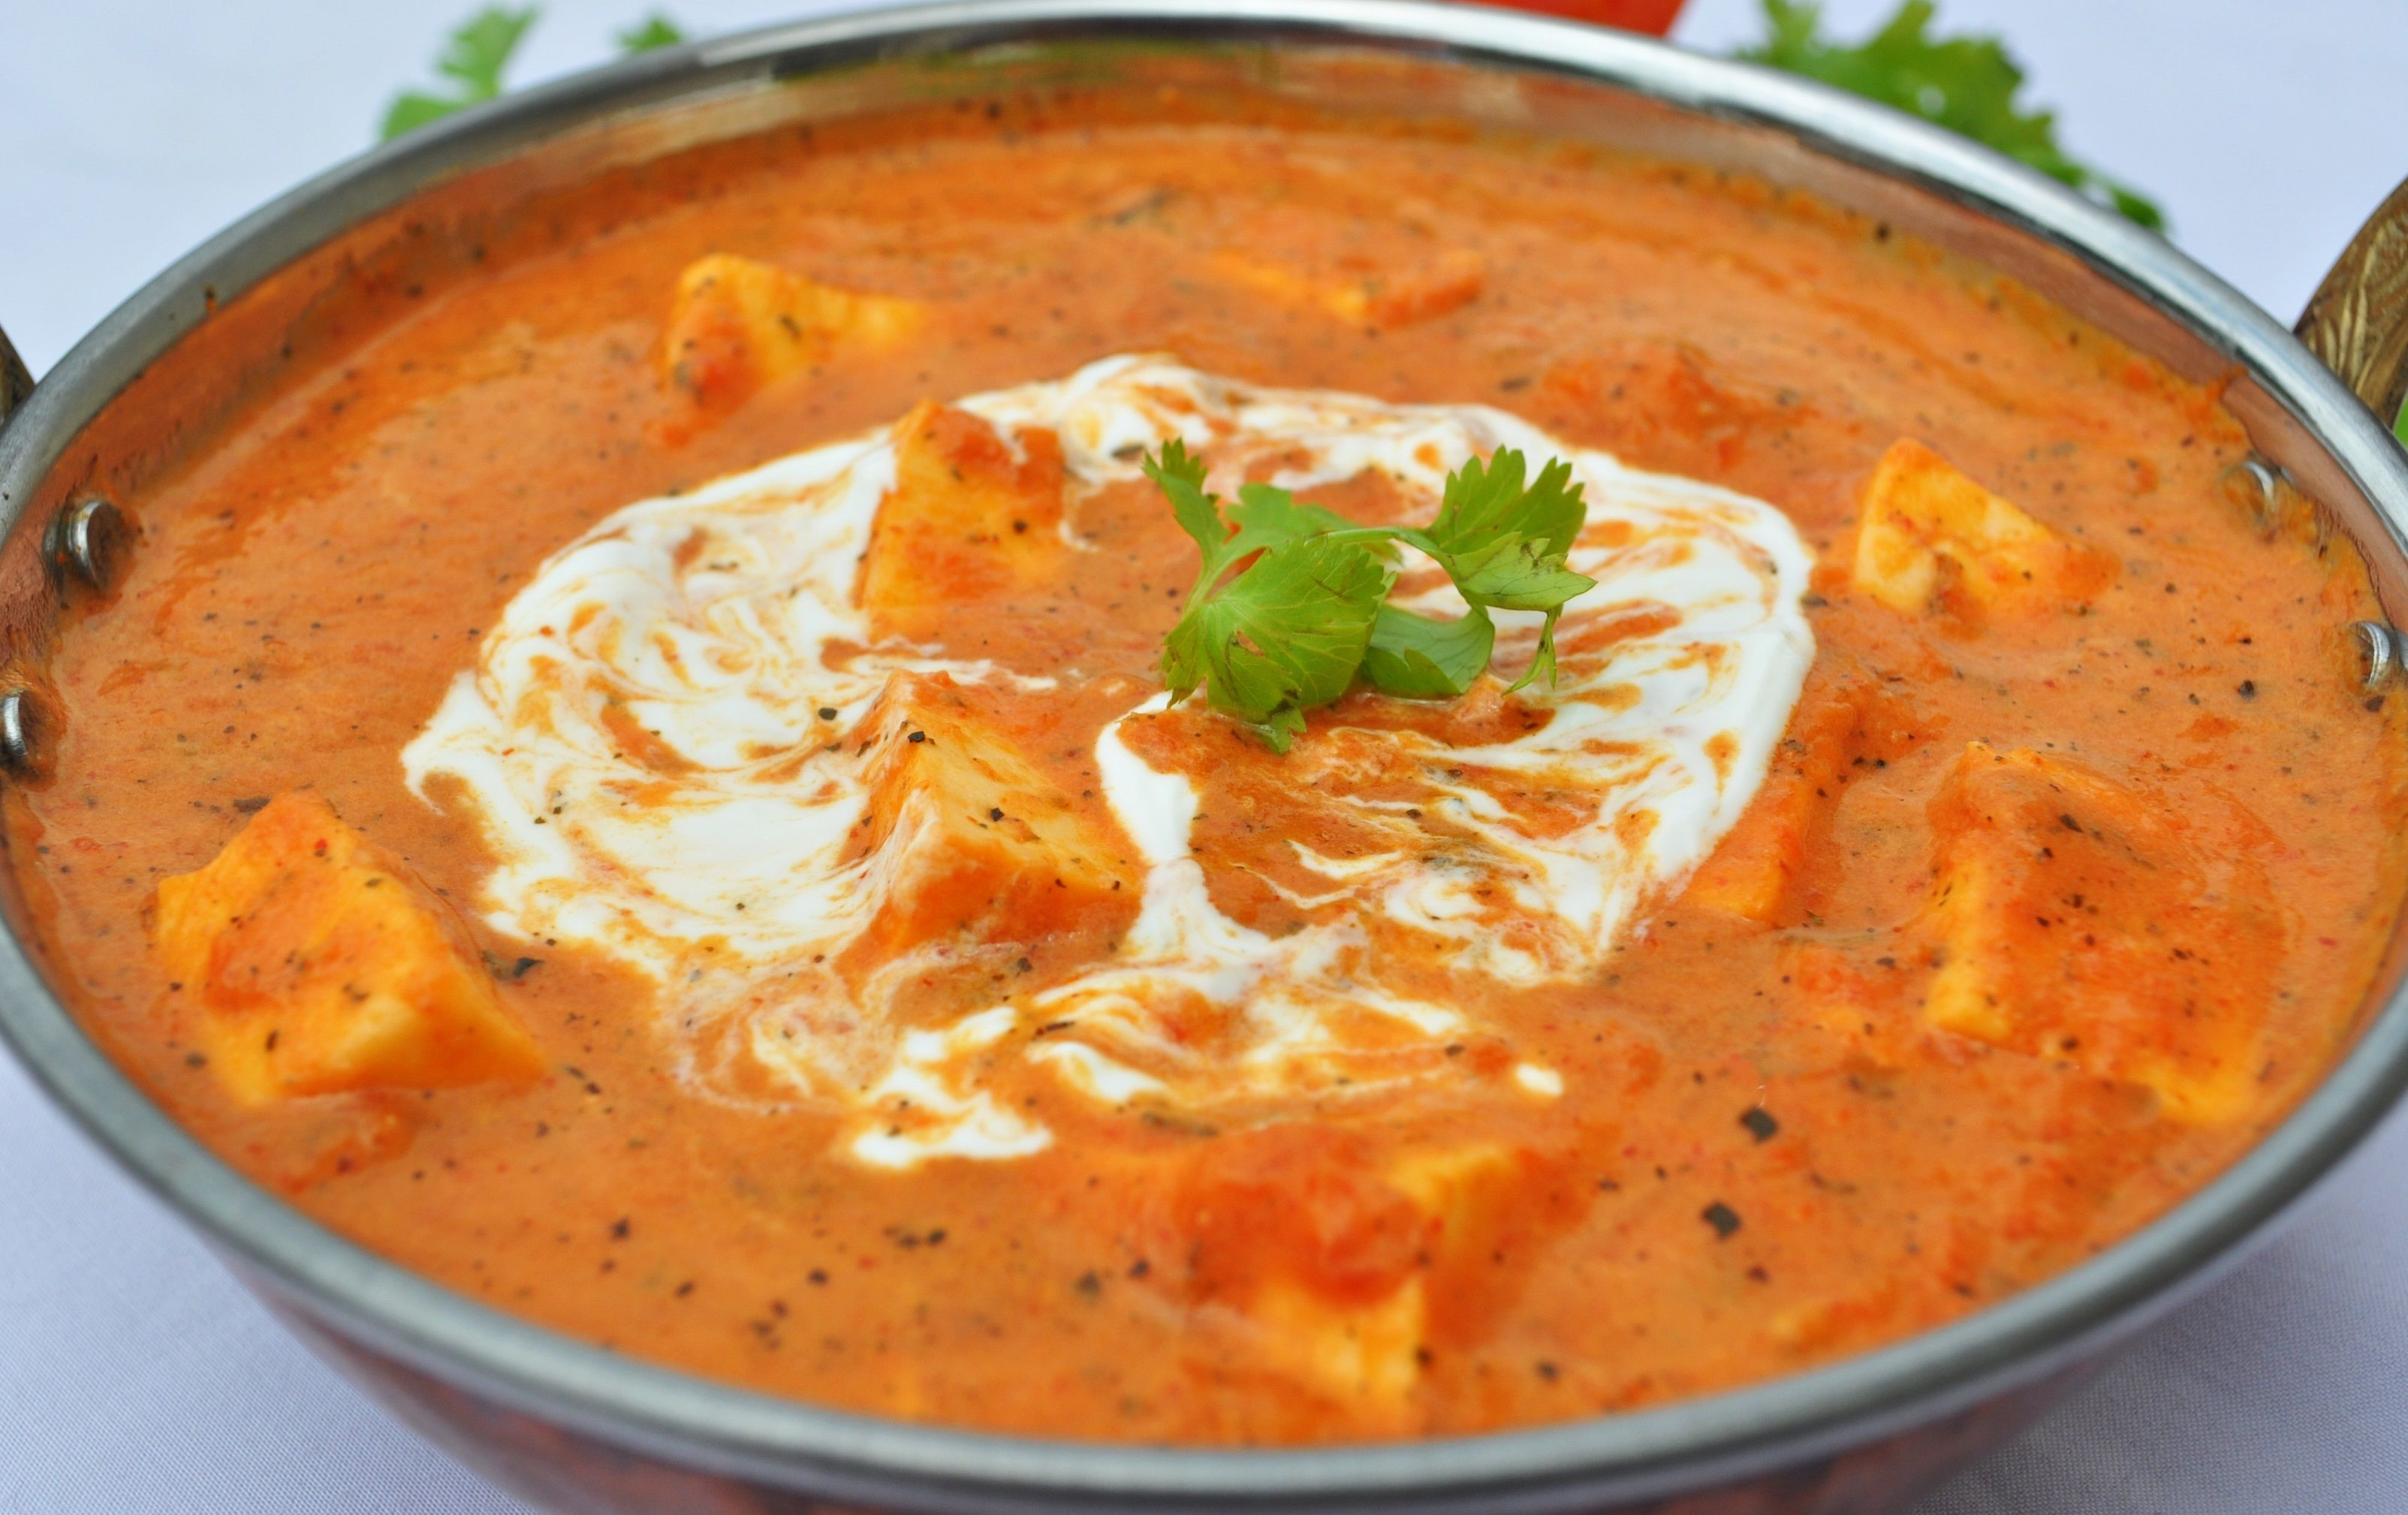 Shahi paneer recipe indian cottage cheese in tomato gravy shahi paneer recipe indian cottage cheese in tomato gravy paneer recipes forumfinder Gallery